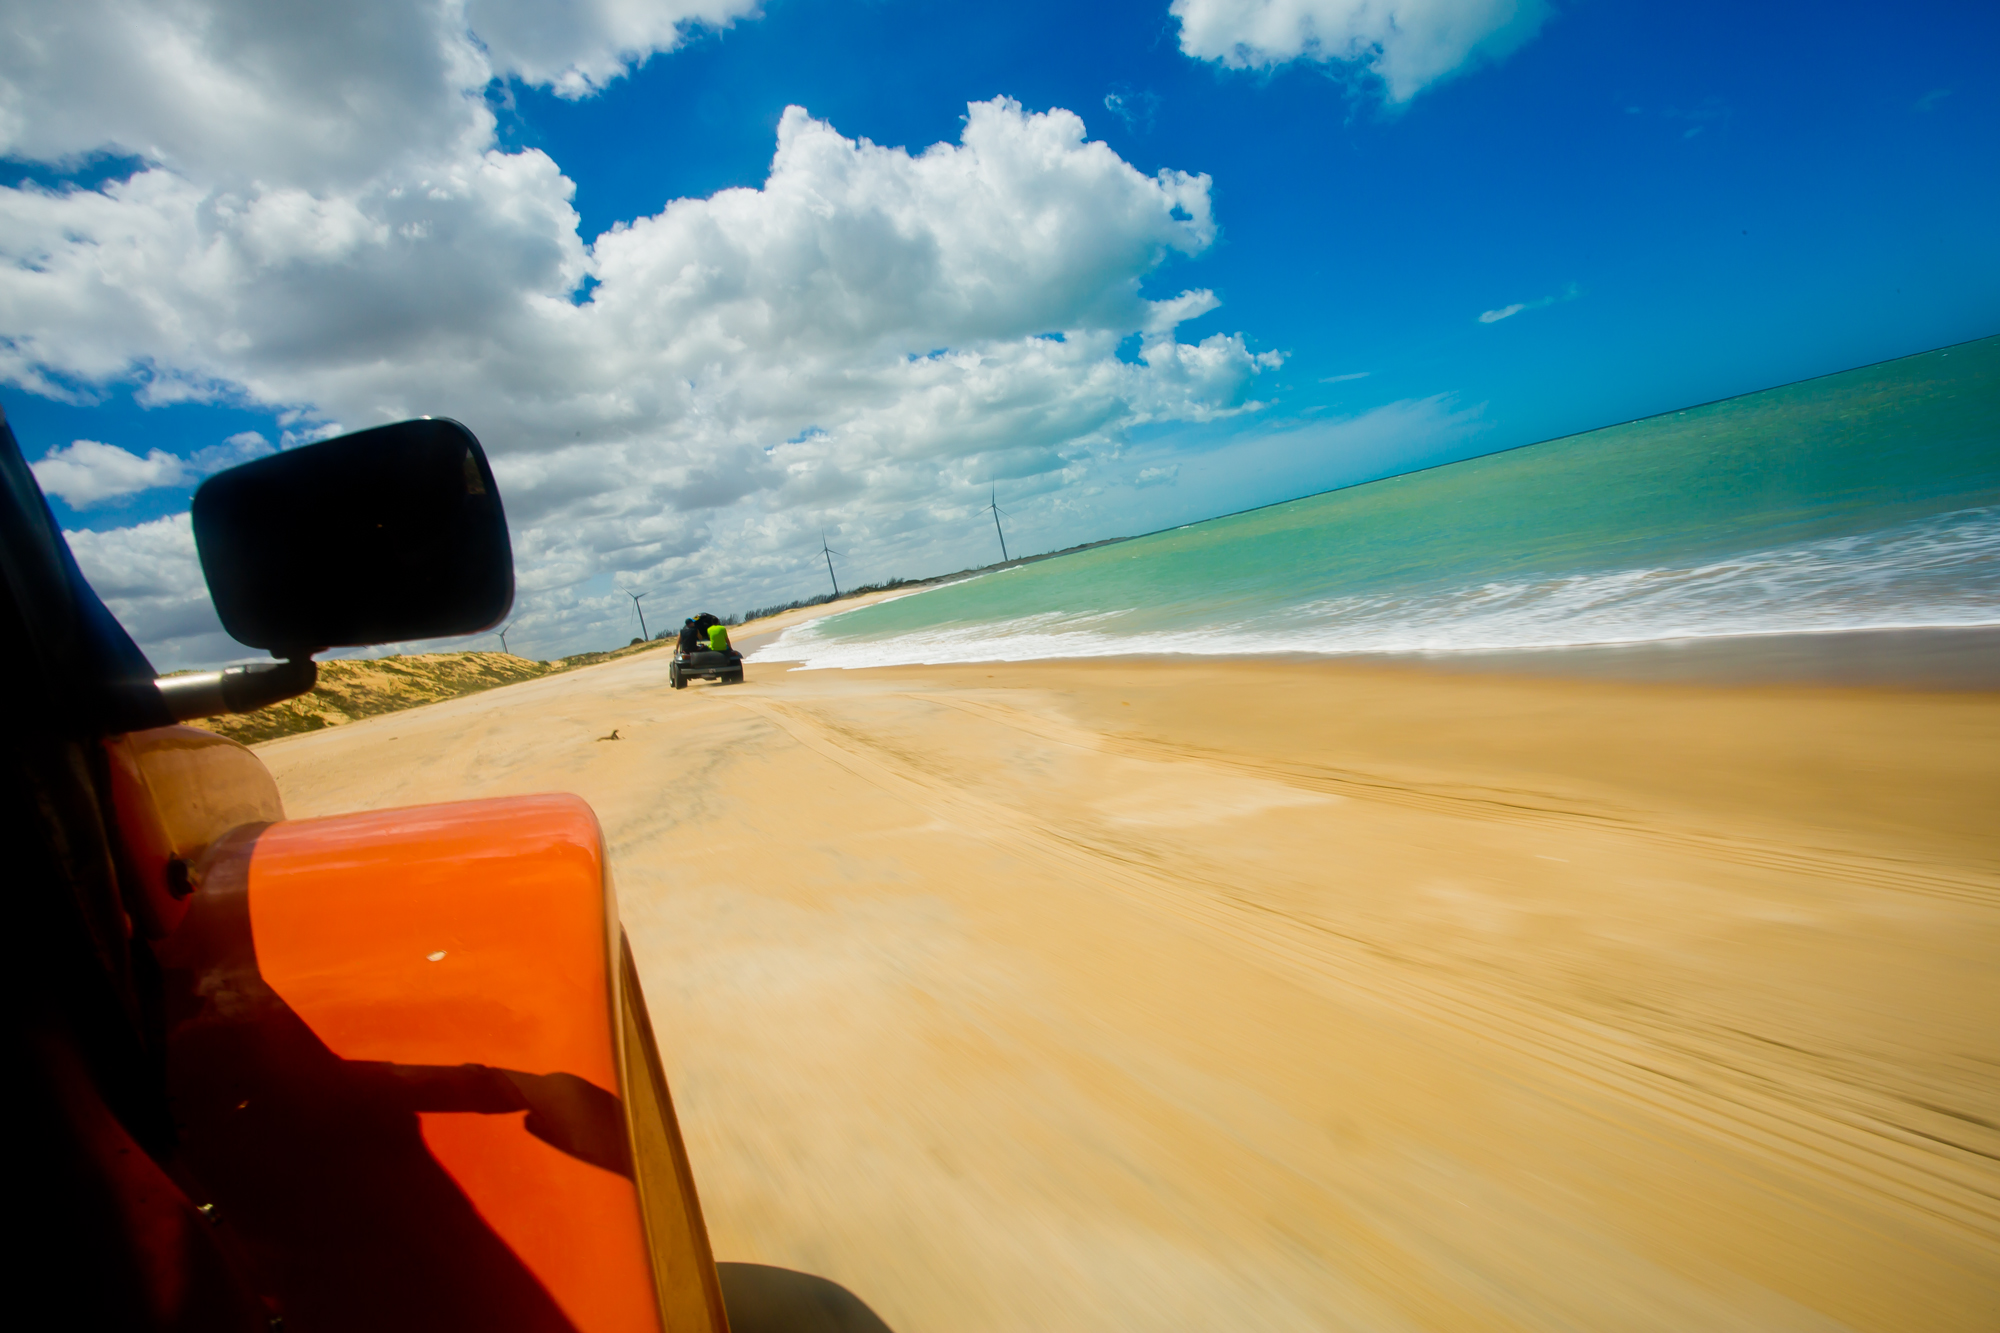 Boogy ride in the dunes of Sao Miguel do Gostoso